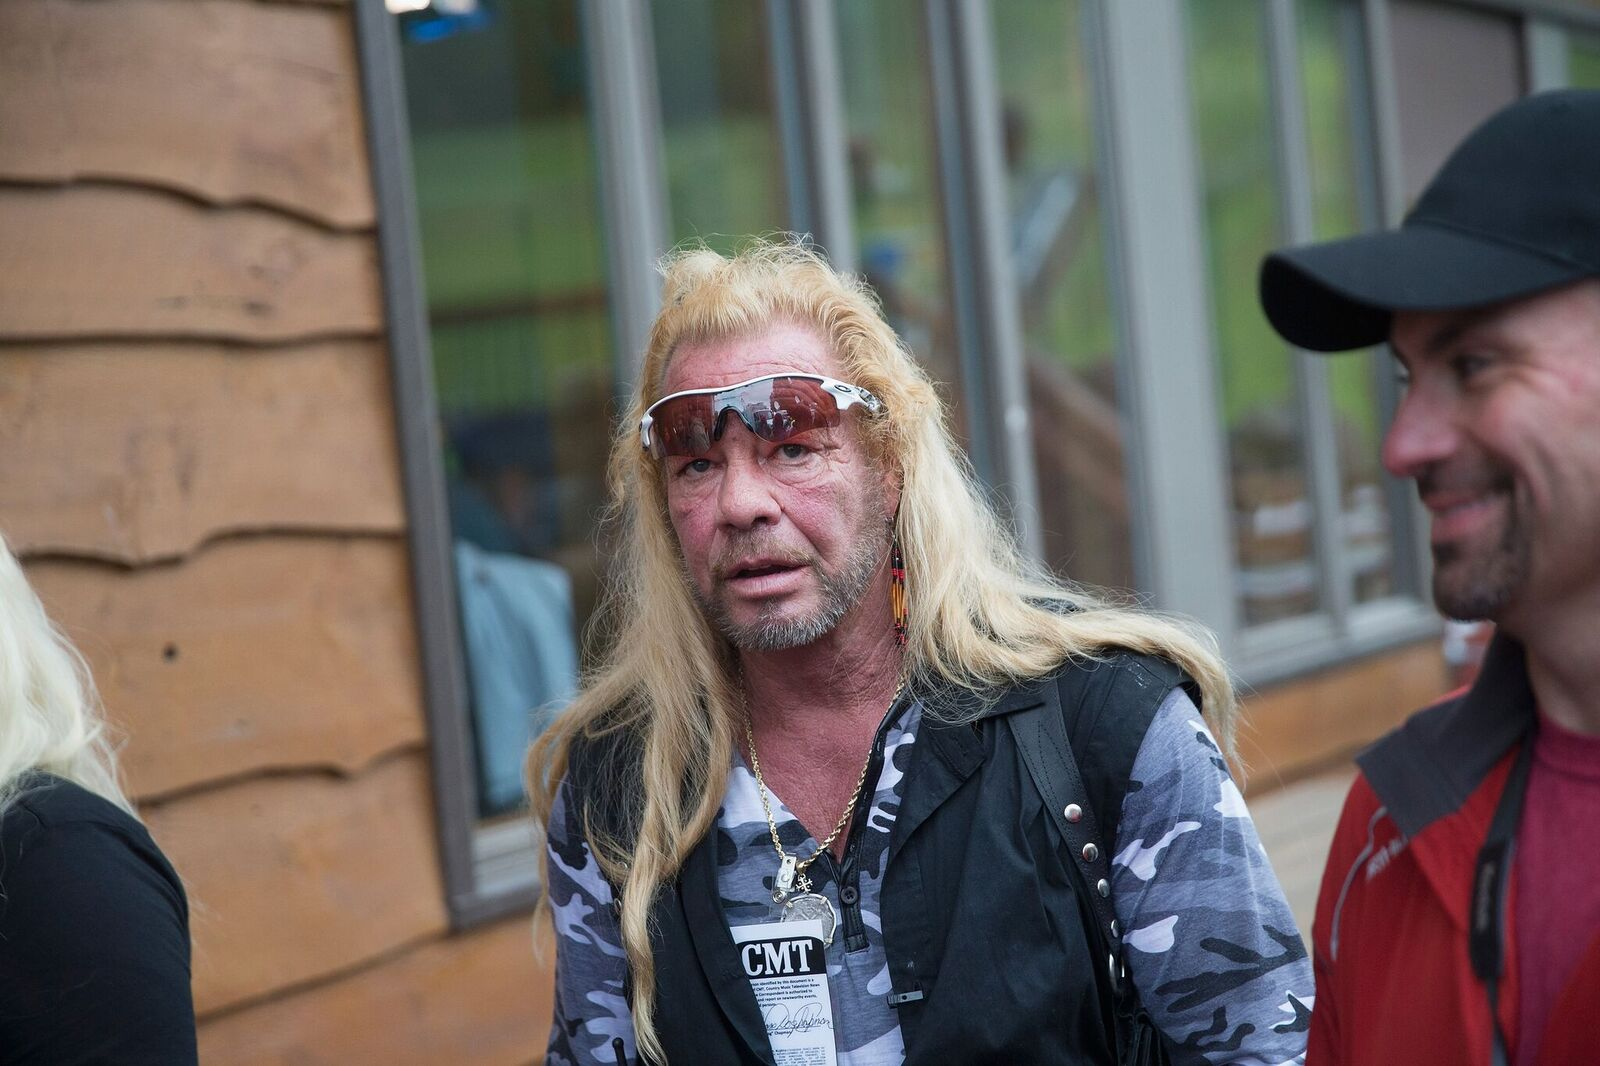 Duane Chapman filming outside a news conference on June 28, 2015, in Malone, New York | Photo: Scott Olson/Getty Images